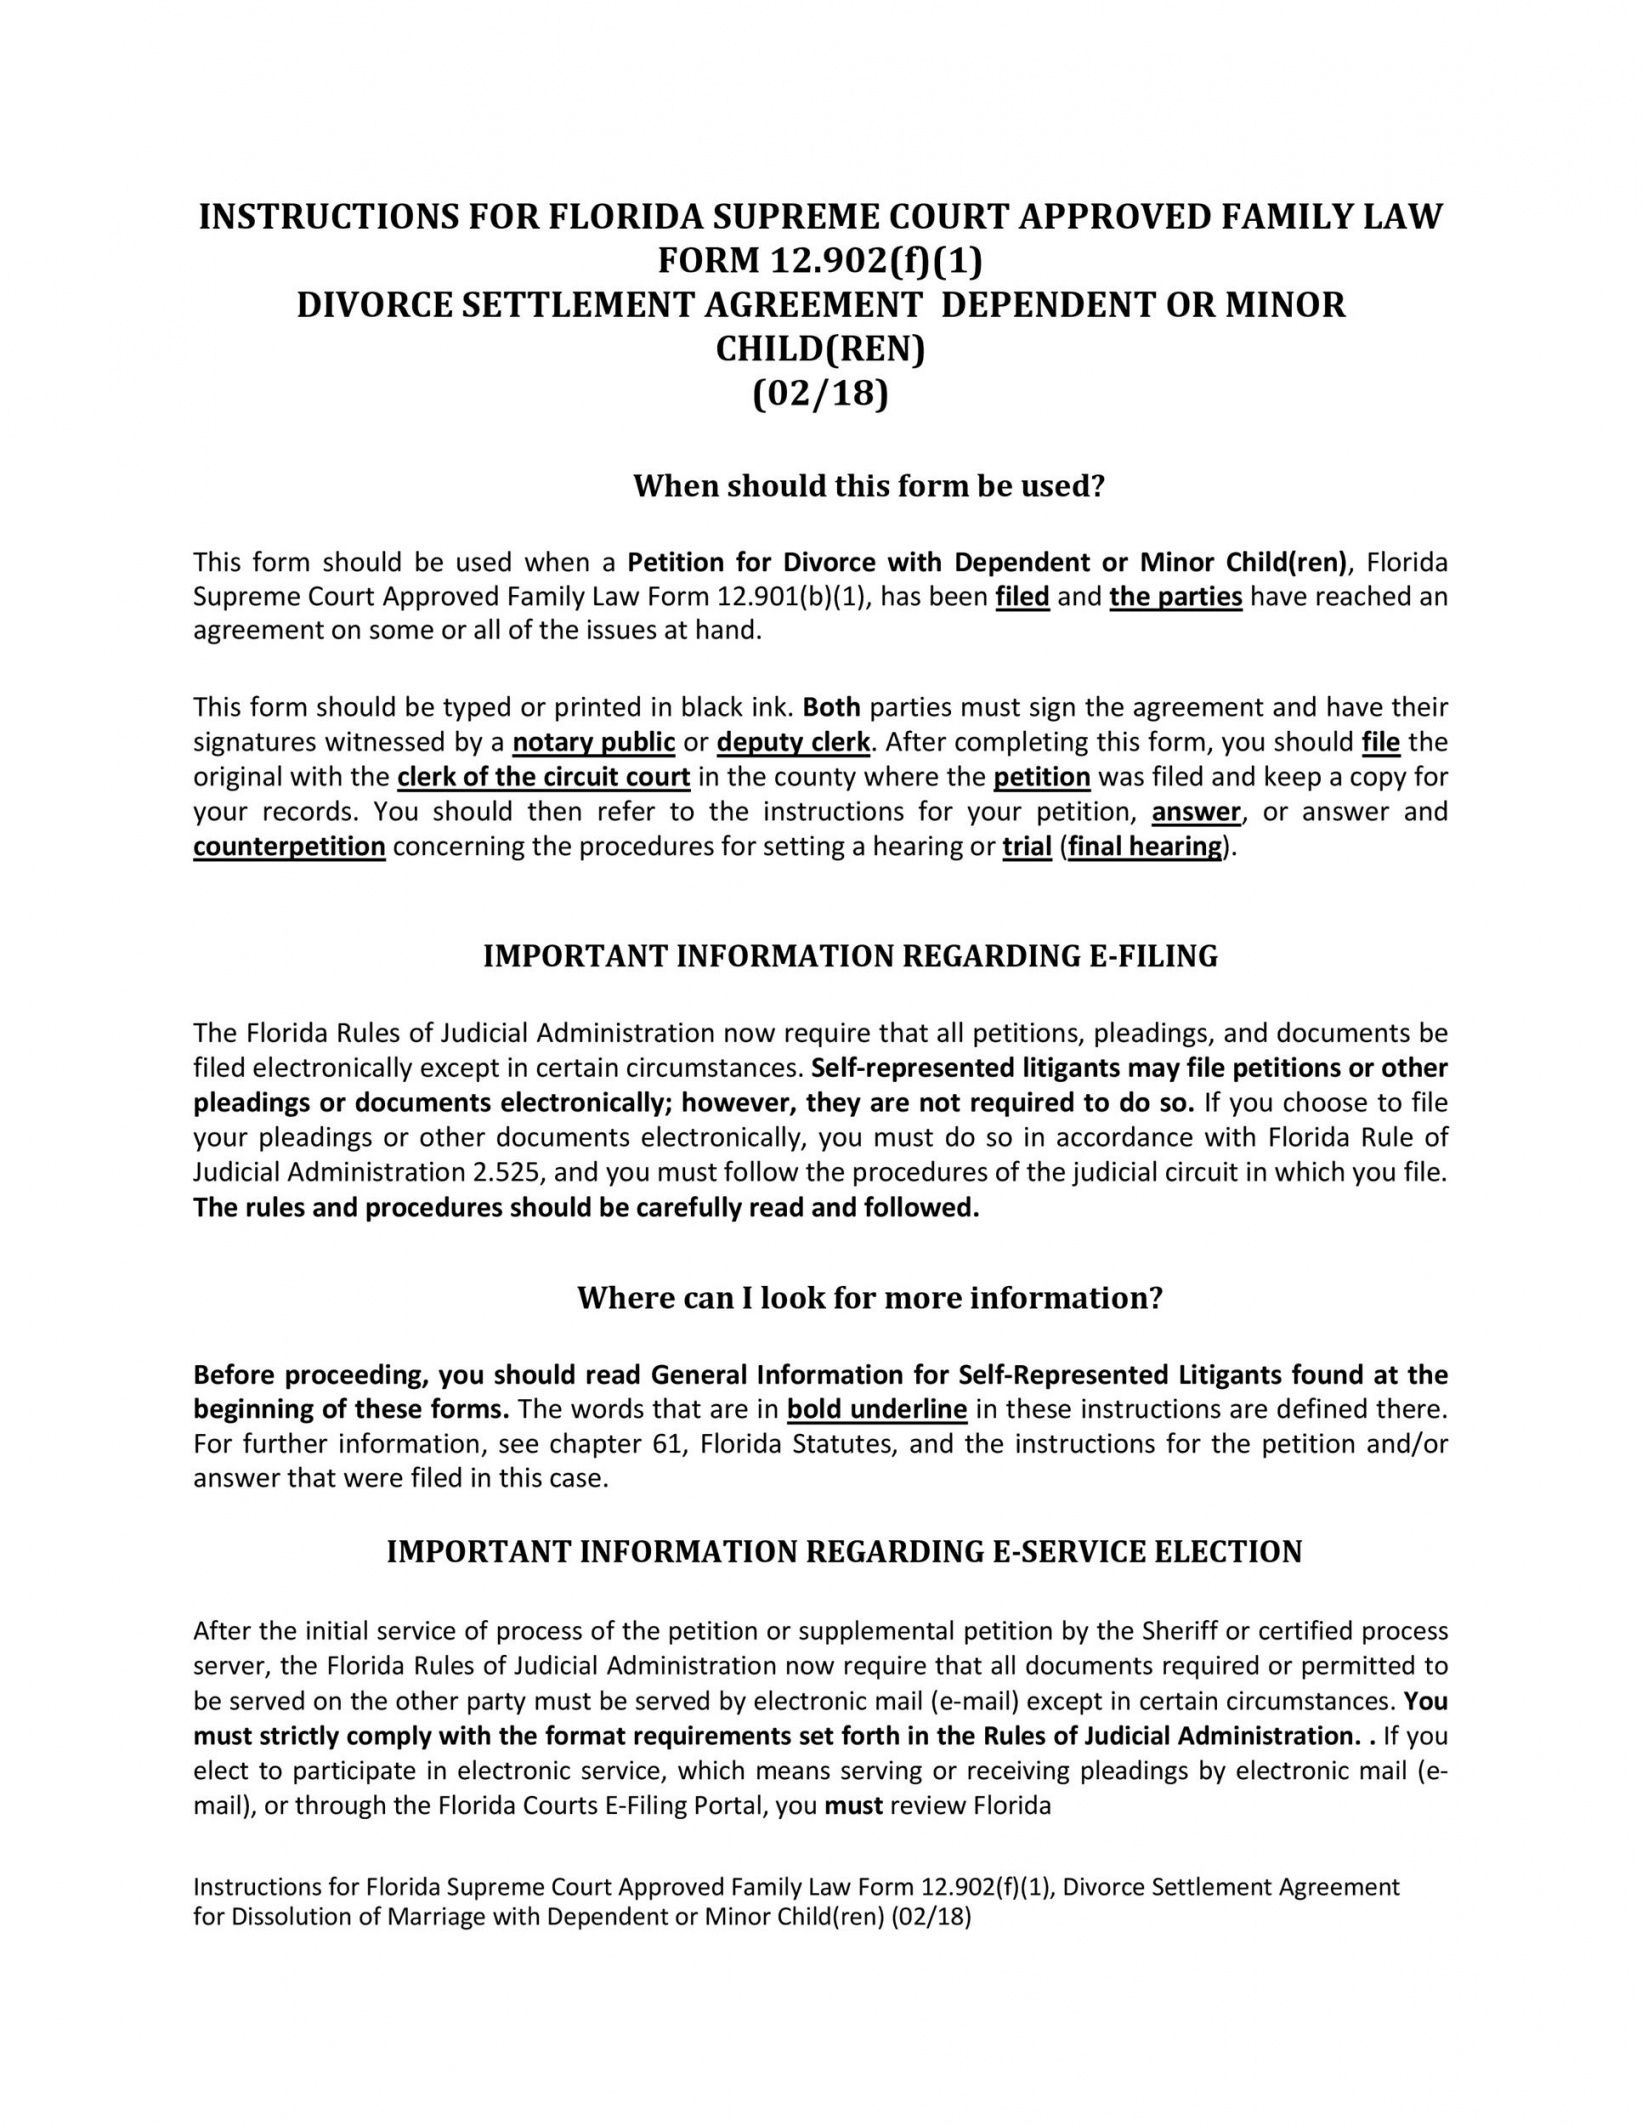 sample 42 divorce settlement agreement templates 100% free marriage dissolution agreement template example